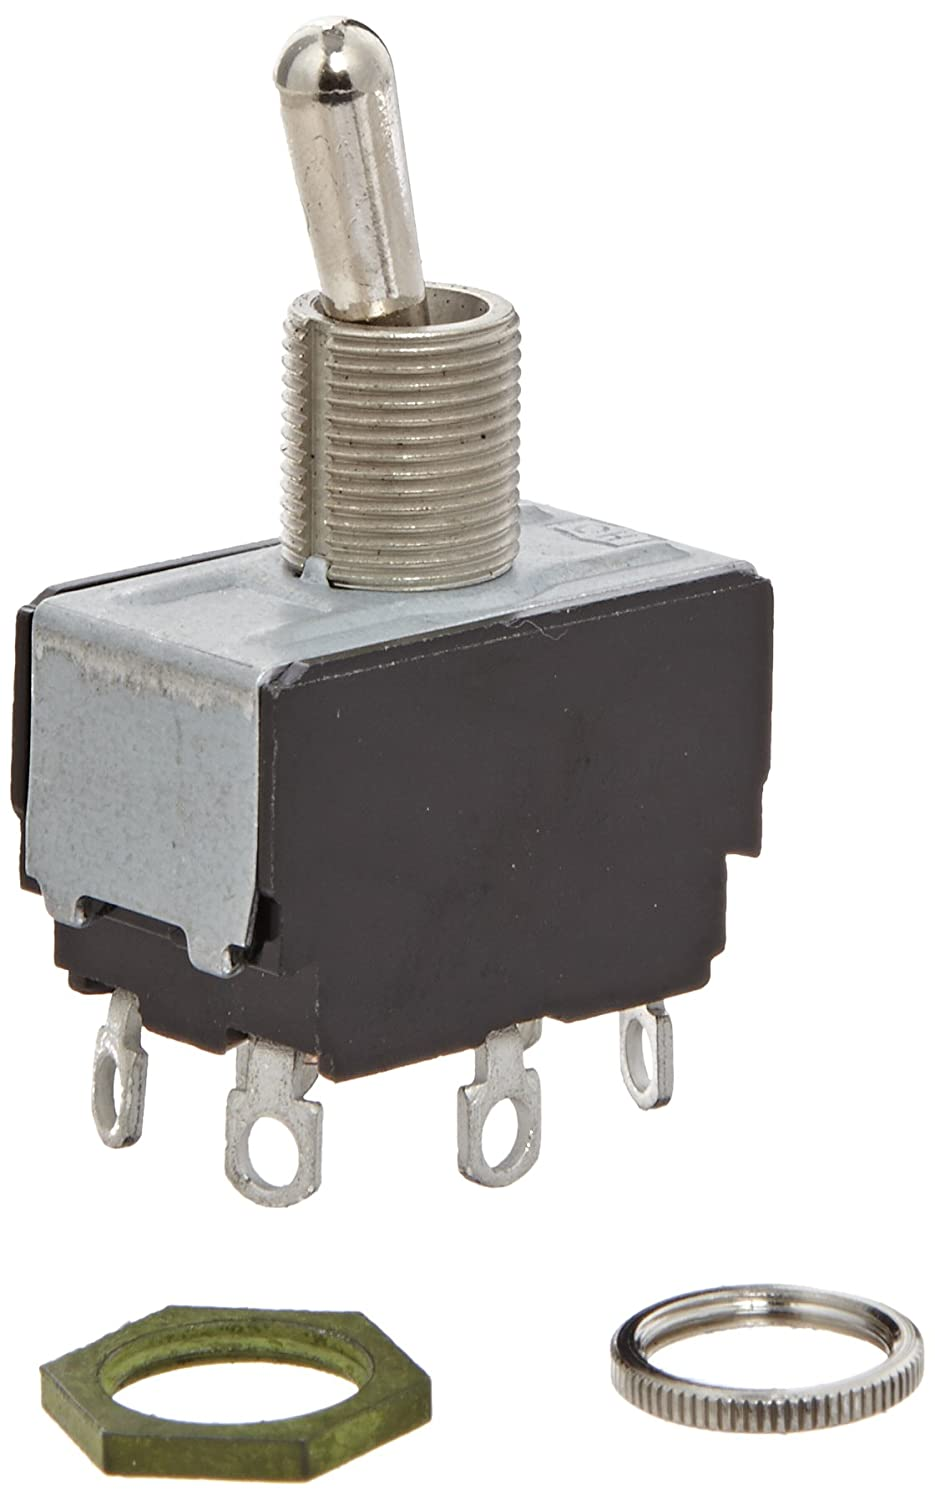 Eaton 7563k4 General Purpose Toggle Switch Ac Rated Solder Hayward Goldline Aqualogic Main Printed Circuit Board Glxpcbmain Termination On Off Action Dpdt Contacts Electronic Component Switches